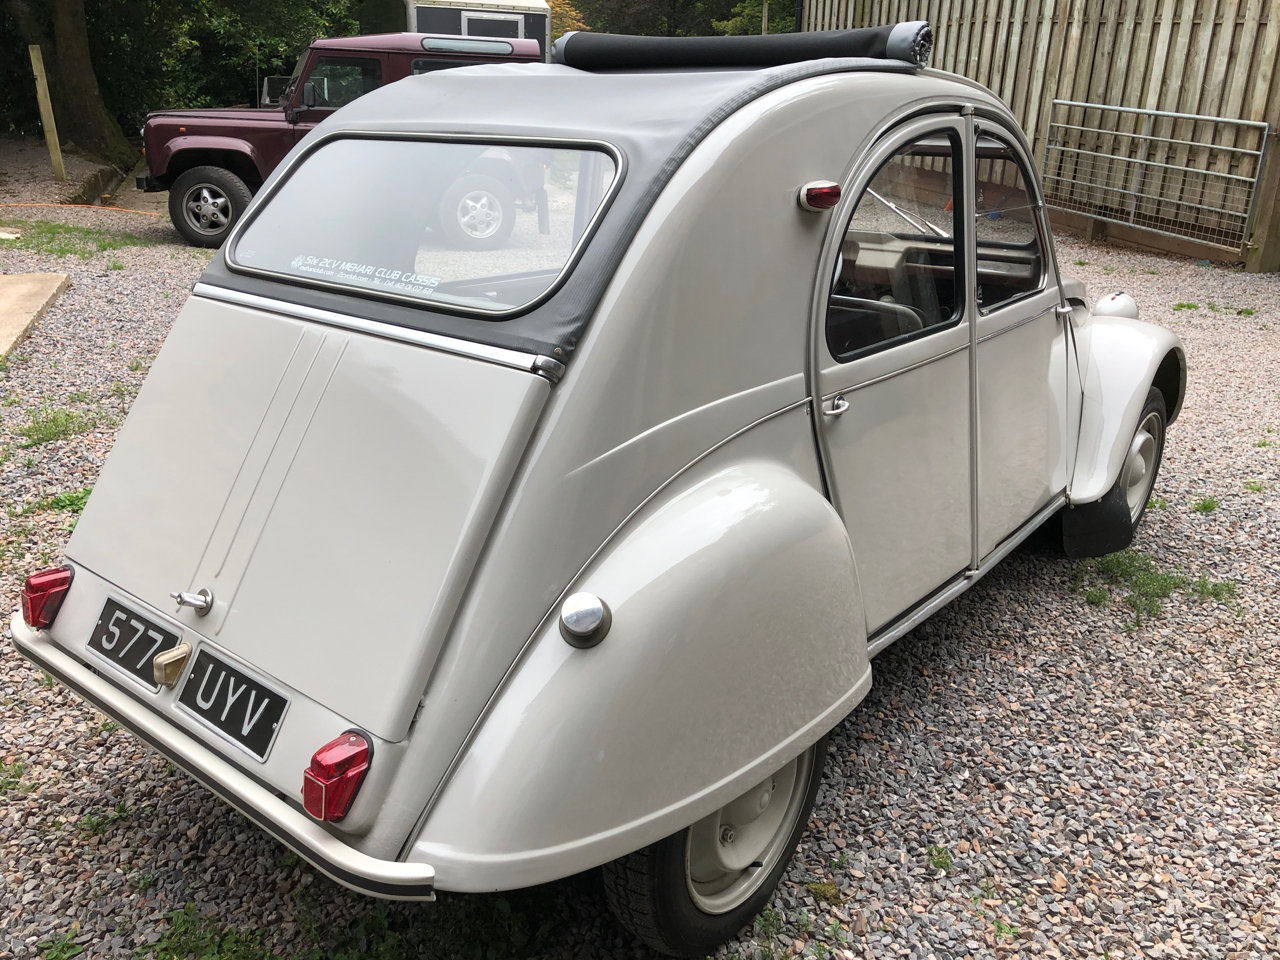 1962 Citroen 2CV with Traffi-Clutch SOLD (picture 4 of 6)